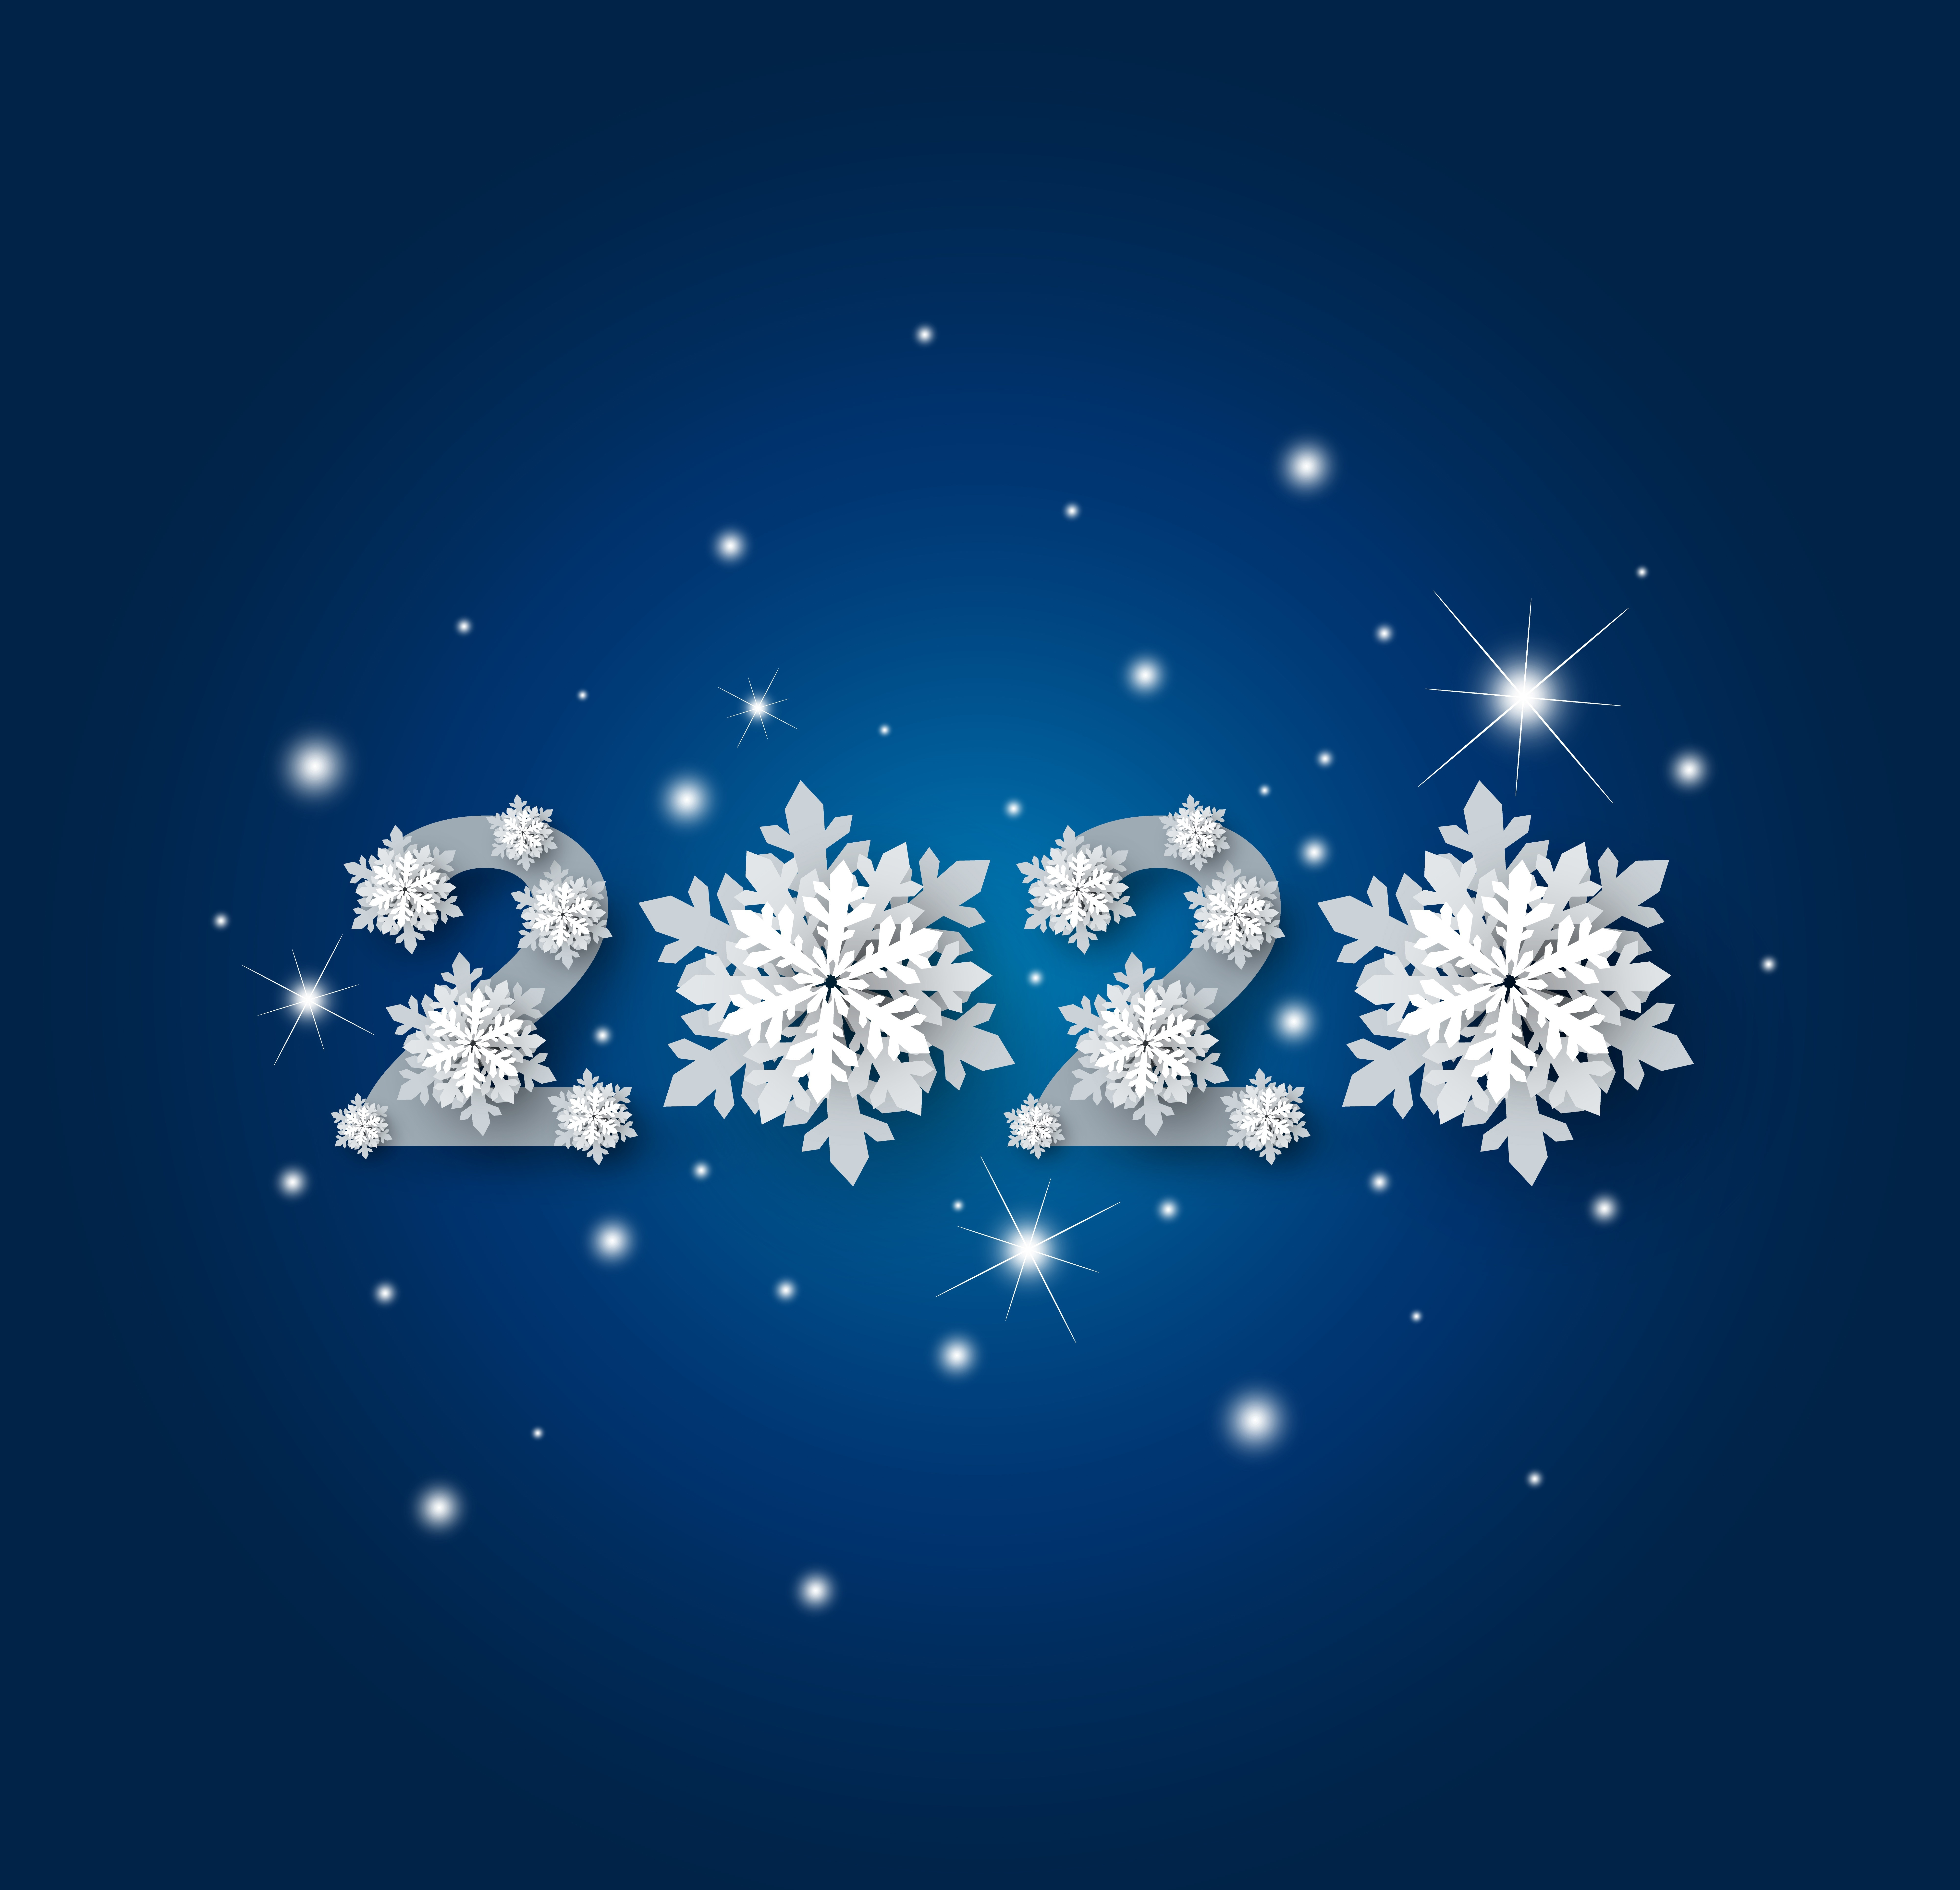 Image: Numbers, 2020, new year, snowflakes, blue background